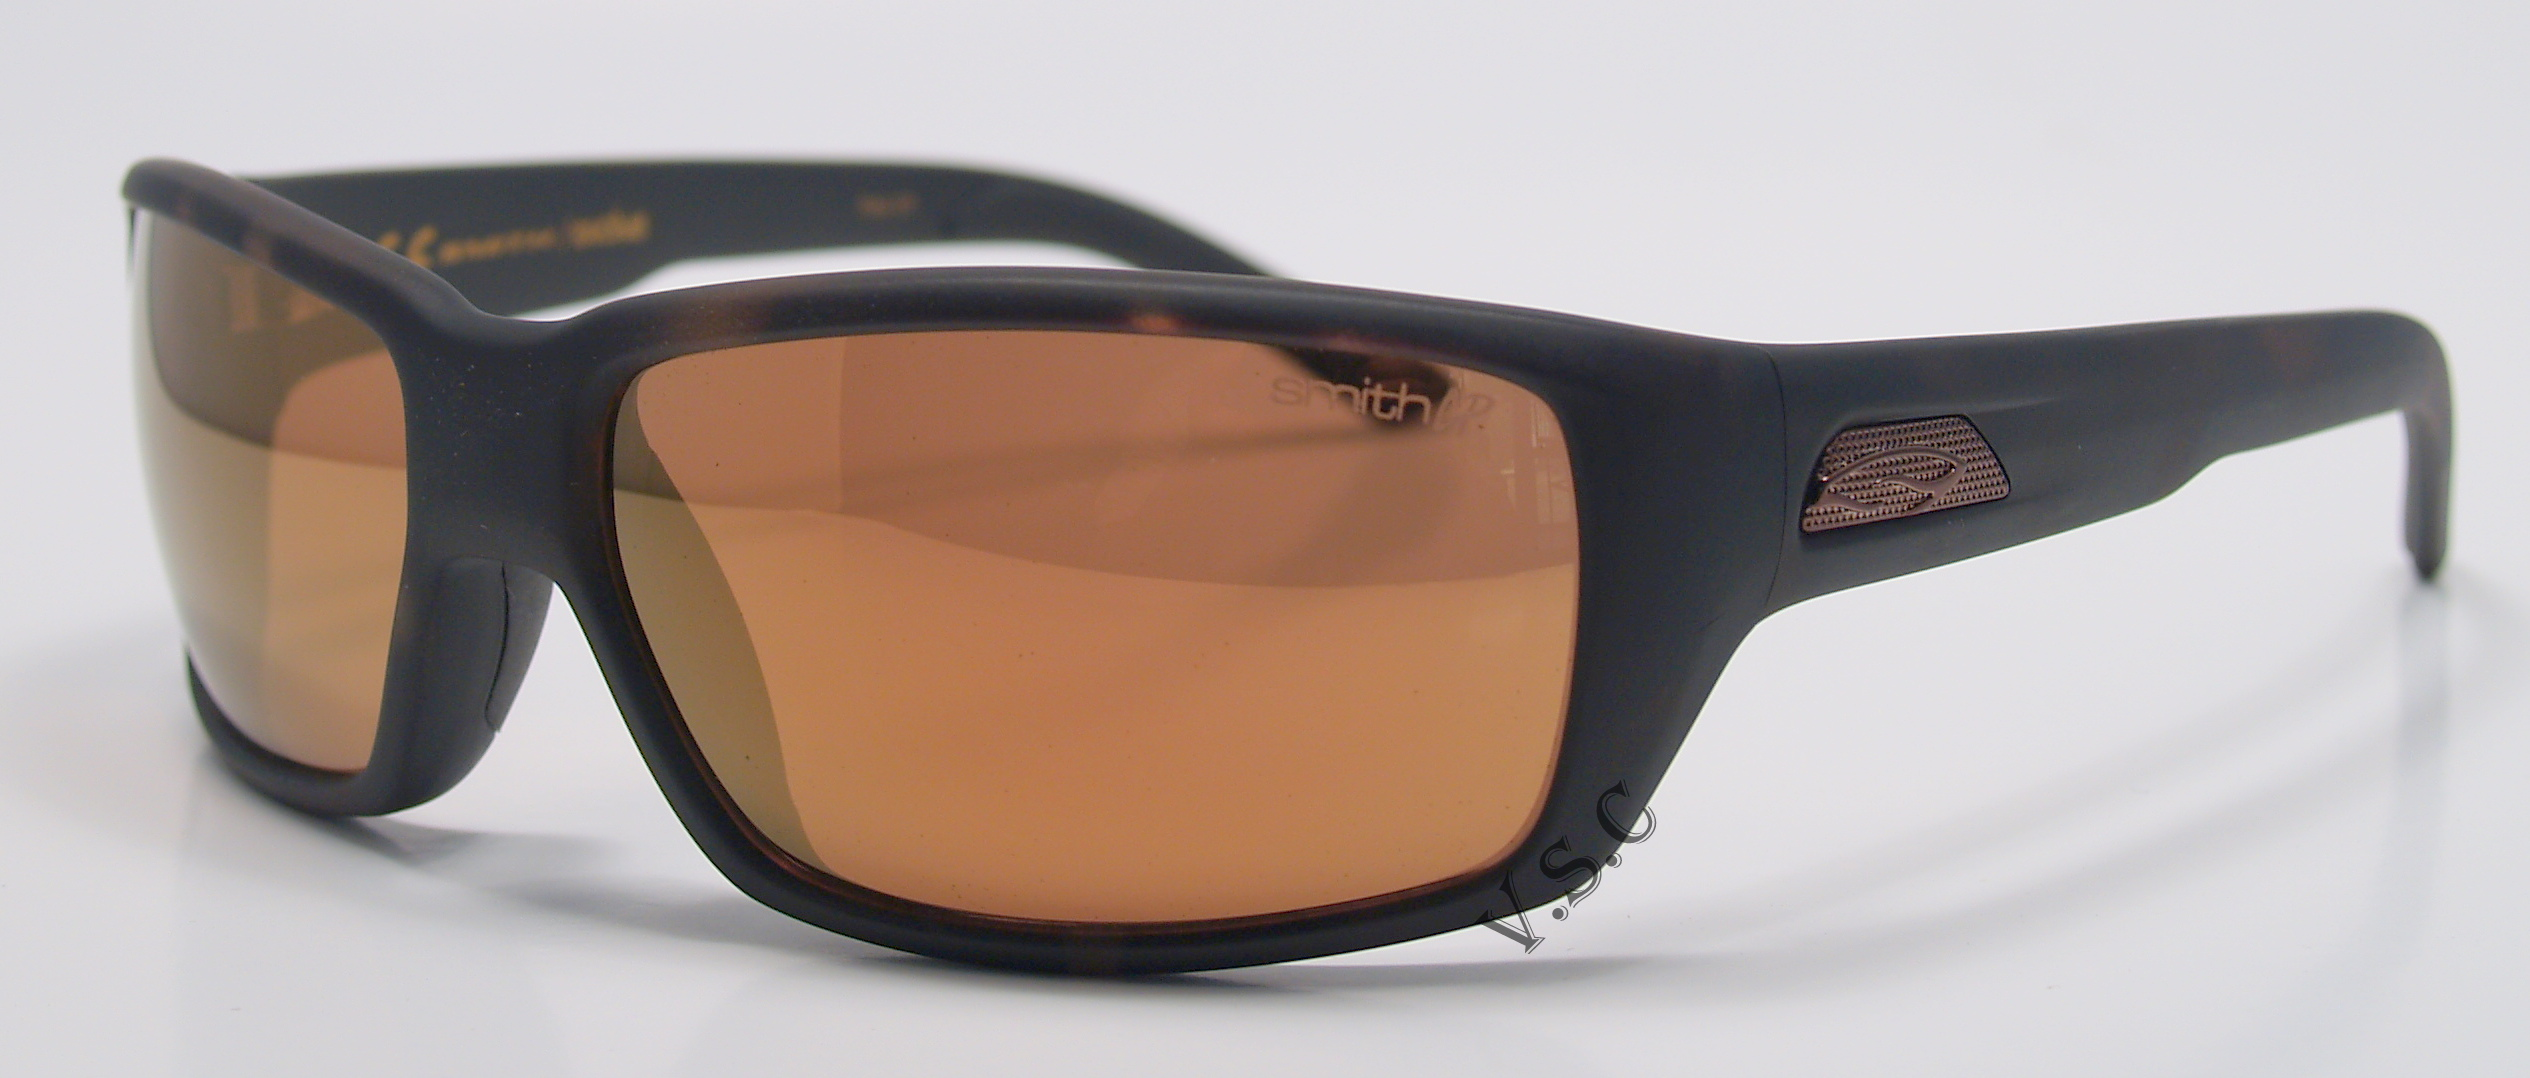 Smith Rambler Polarized Sunglasses   United Nations System Chief ... 8c893afe076d